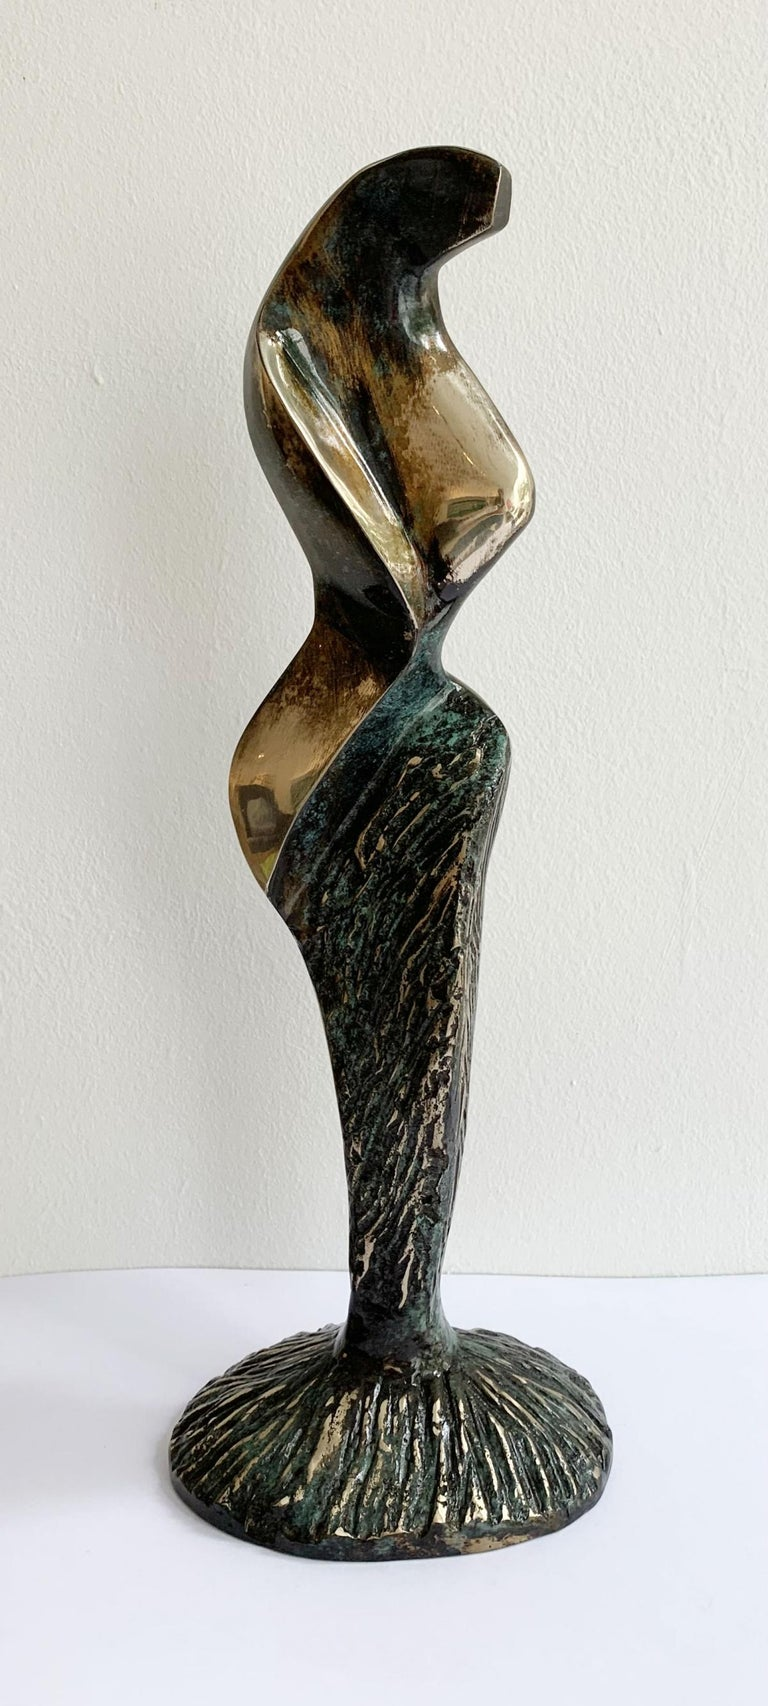 Stanisław Wysocki Abstract Sculpture - Dame VIII - XXI century Contemporary bronze sculpture, Abstract & figurative